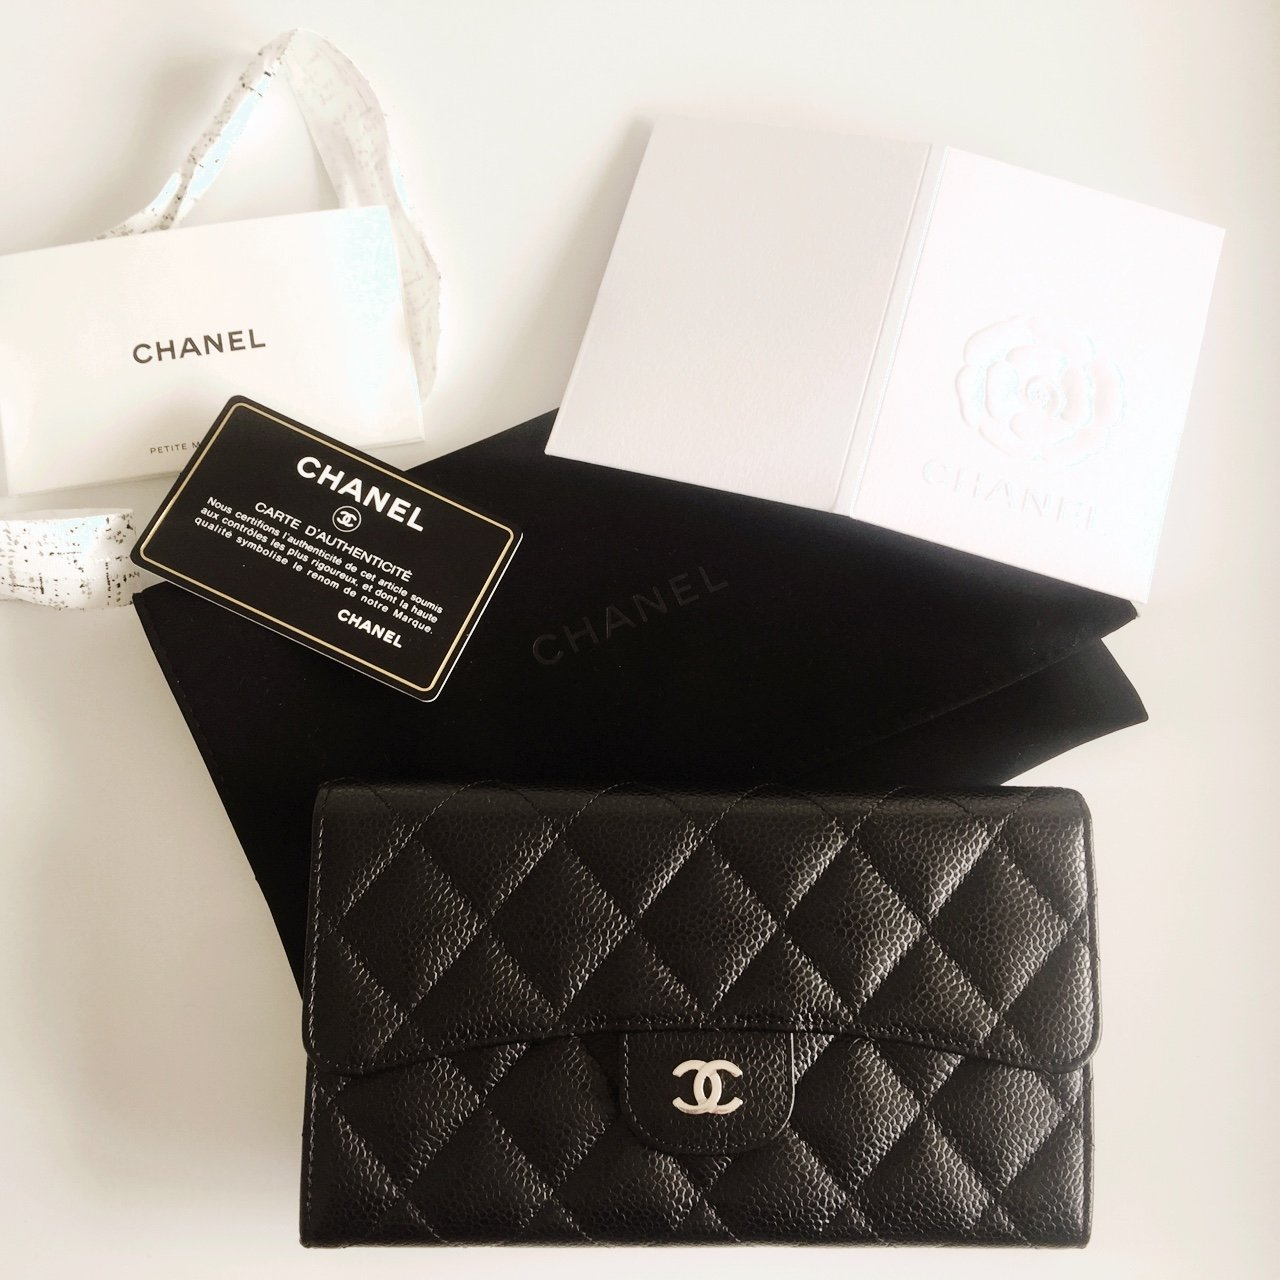 f1a405b514d6 ... Chanel flap wallet black caviar shw like new worn one time Depop  ninstifie 2 years ago ...